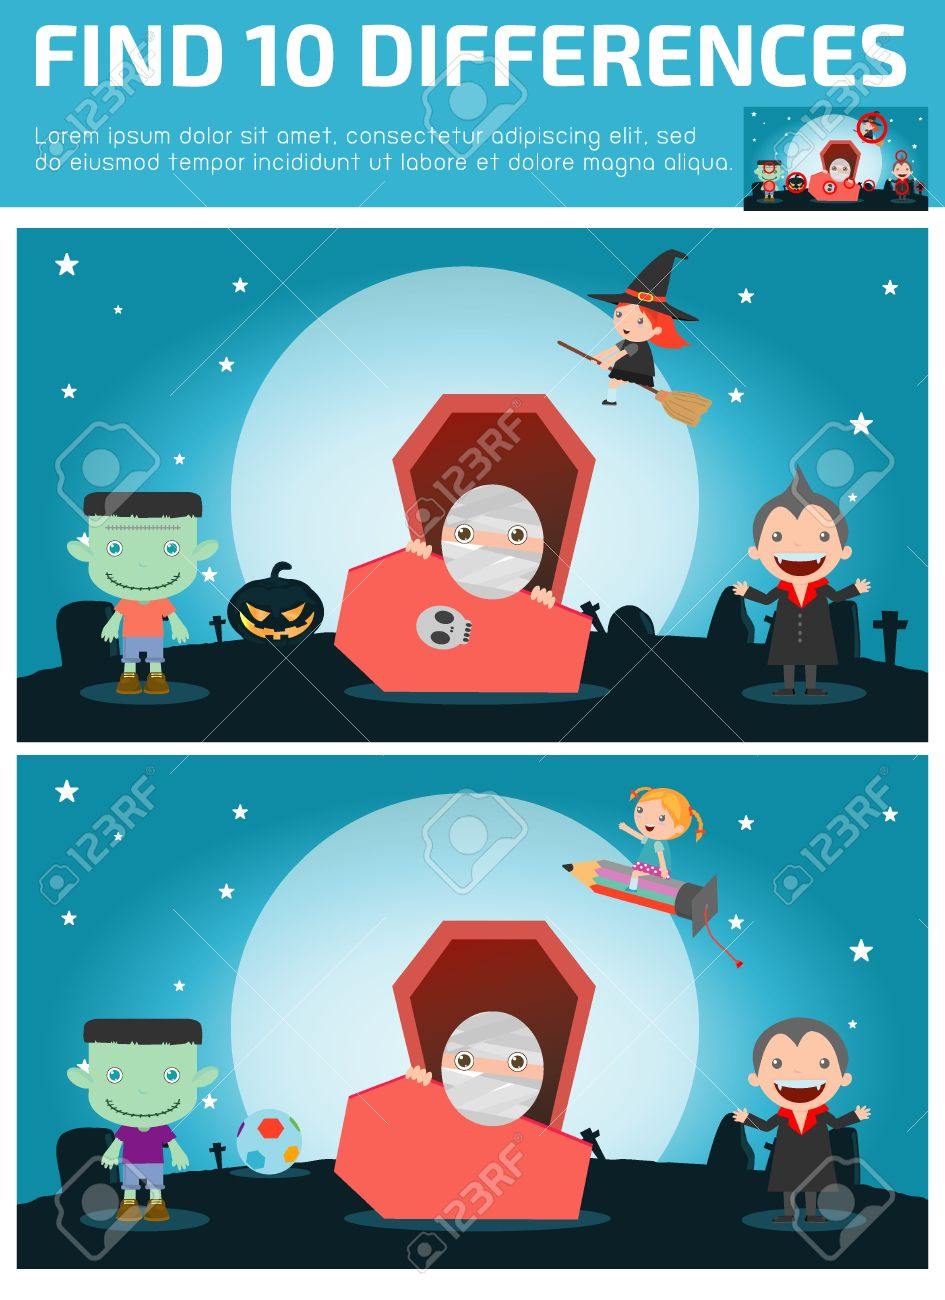 find differences,Game for kids ,find differences,Brain games, children game, Educational Game for Preschool Children, Vector Illustration, Happy Halloween. - 46691382